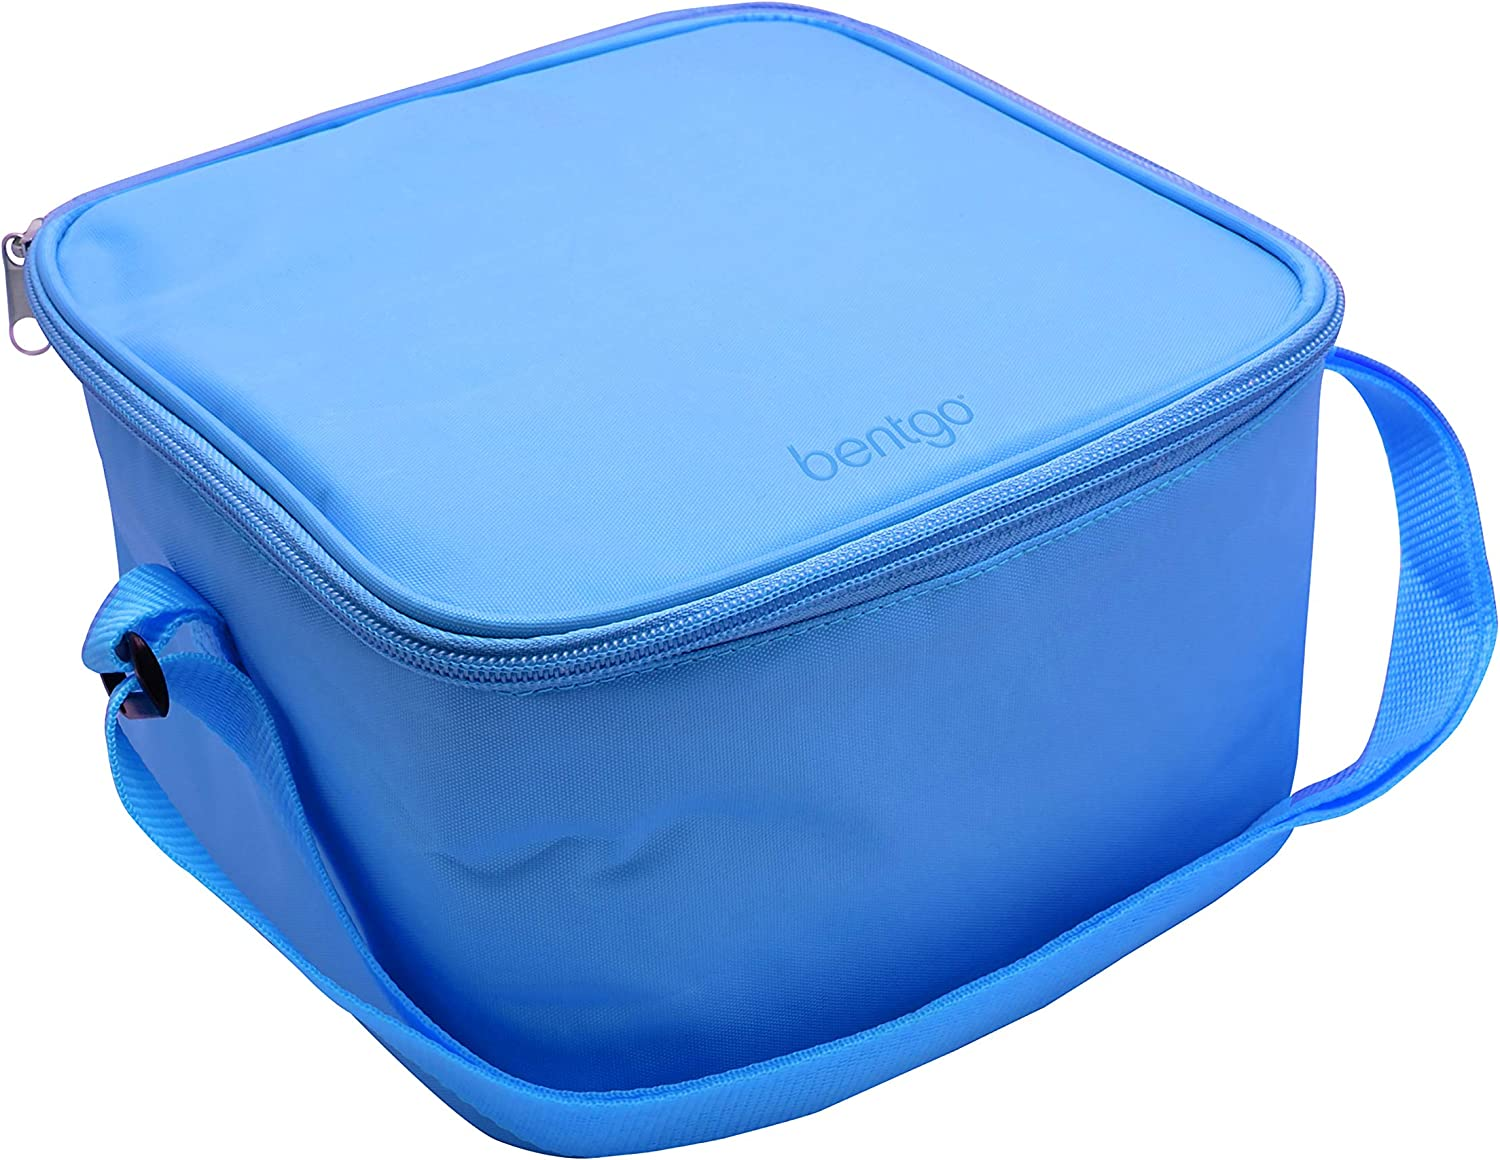 Bentgo Classic Bag (Blue) - Insulated Lunch Bag Keeps Food Cold On the Go - Fits the Bentgo Classic Lunch Box, Bentgo Cup, Bentgo Sauce Dippers and an Ice Pack - Works With Other Food Storage Boxes